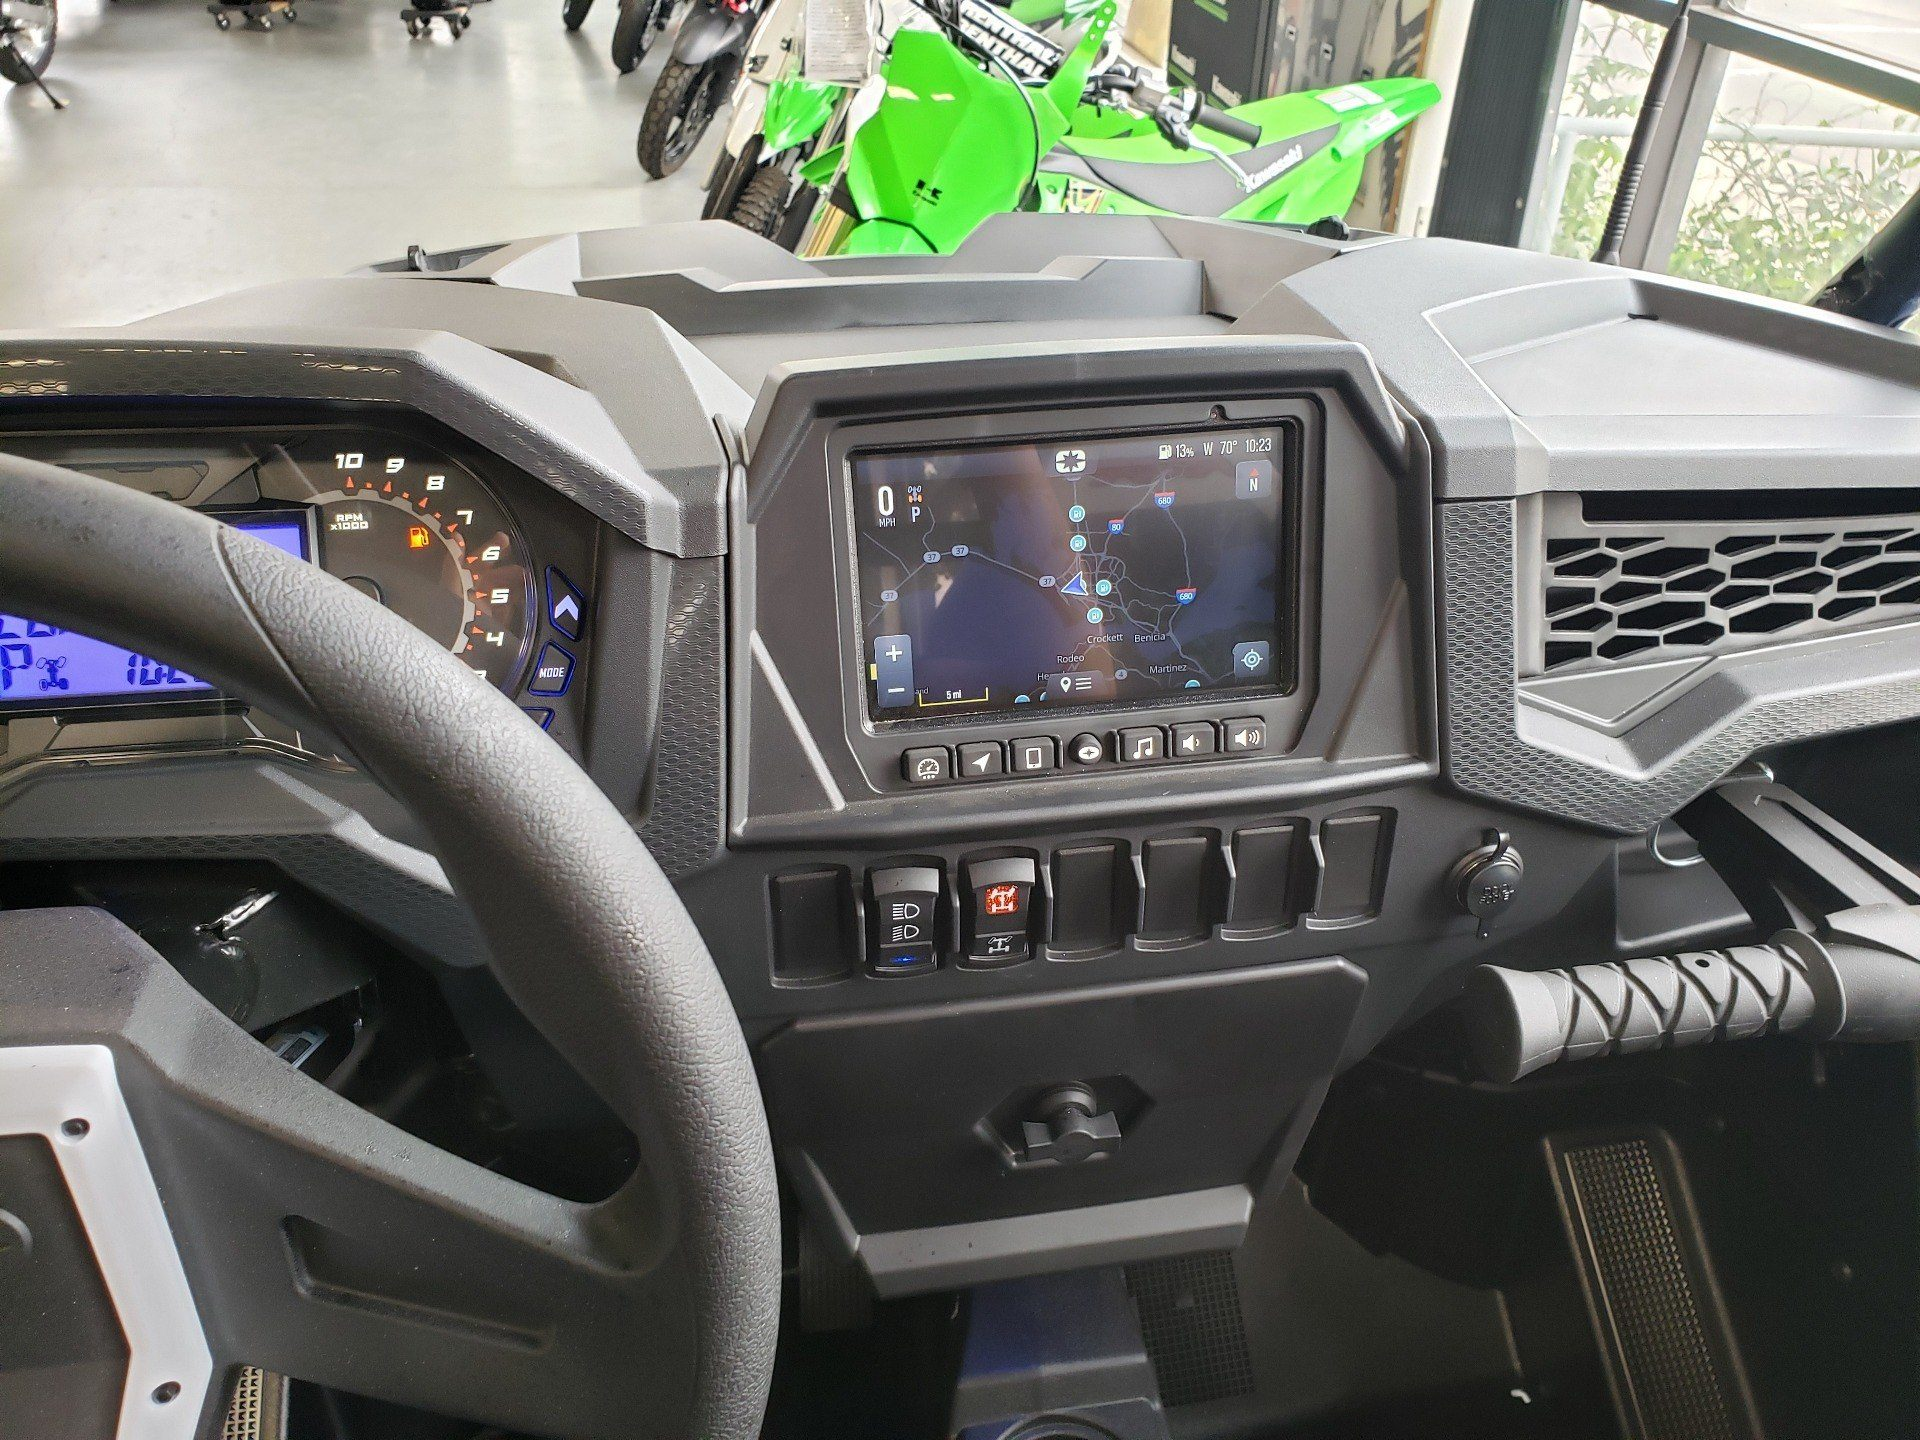 2021 Polaris RZR XP 1000 Premium in Vallejo, California - Photo 9